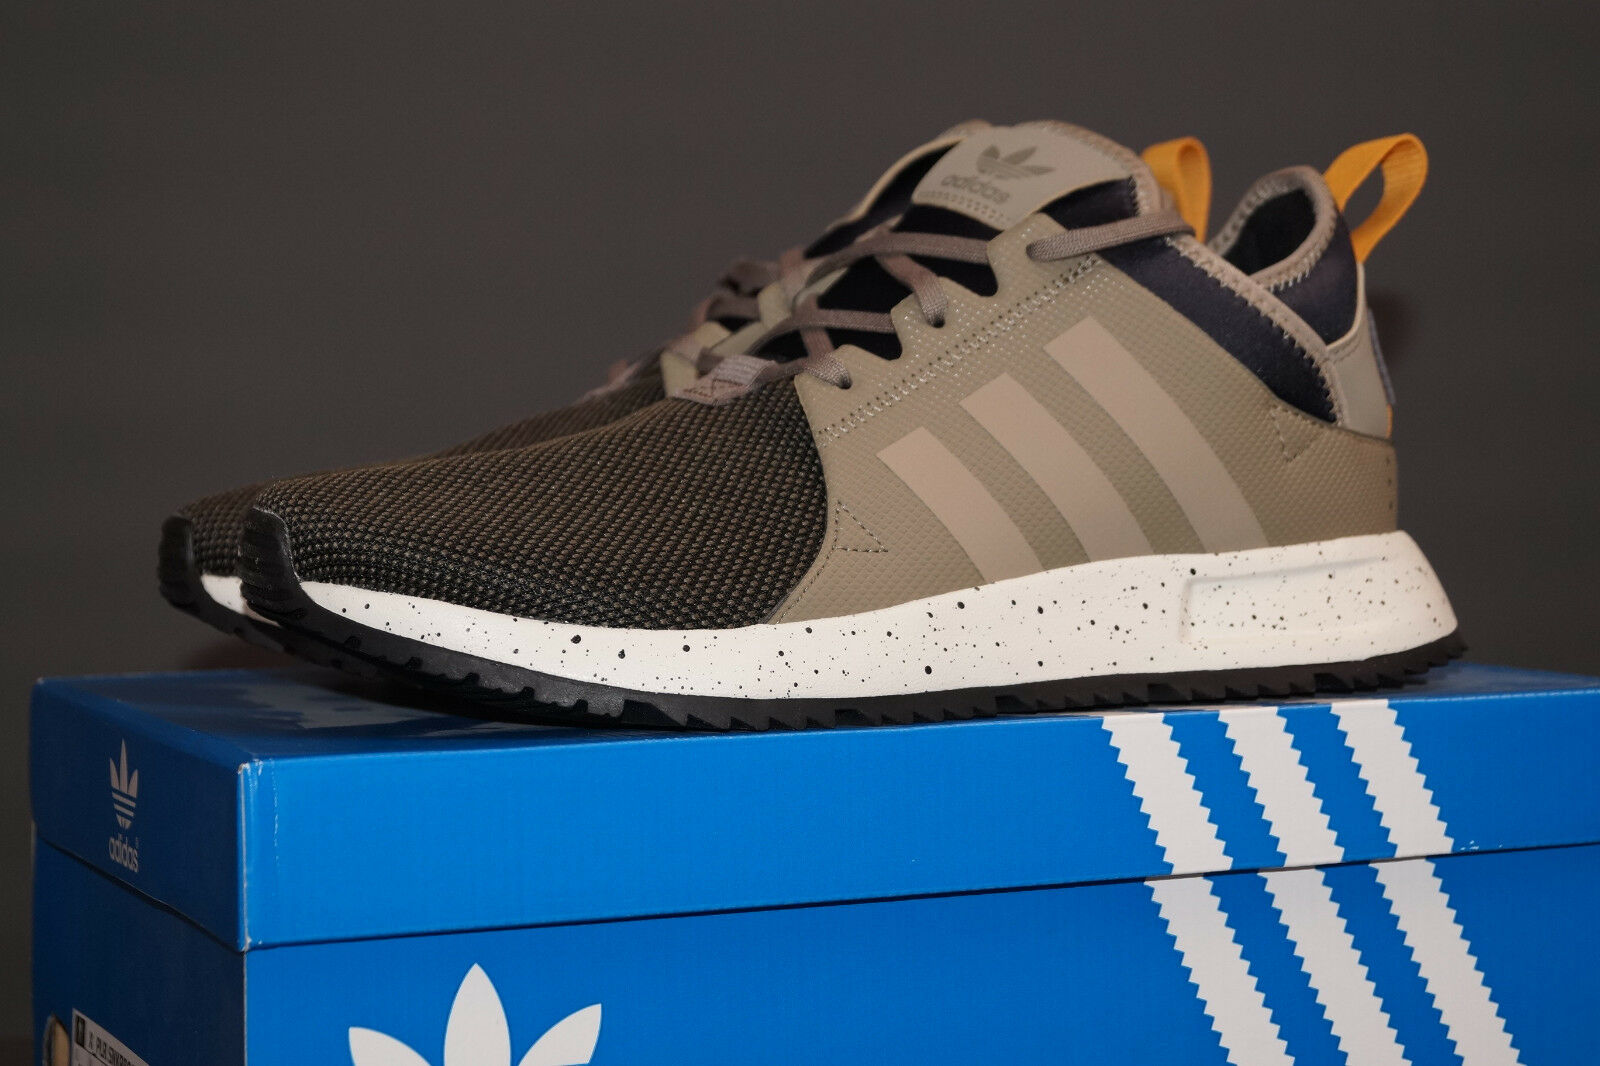 Adidas originals X_PLR SNKRStiefel WINTER EU 40 UK 6.5 oliv khaki BZ0670 Herren Queensland